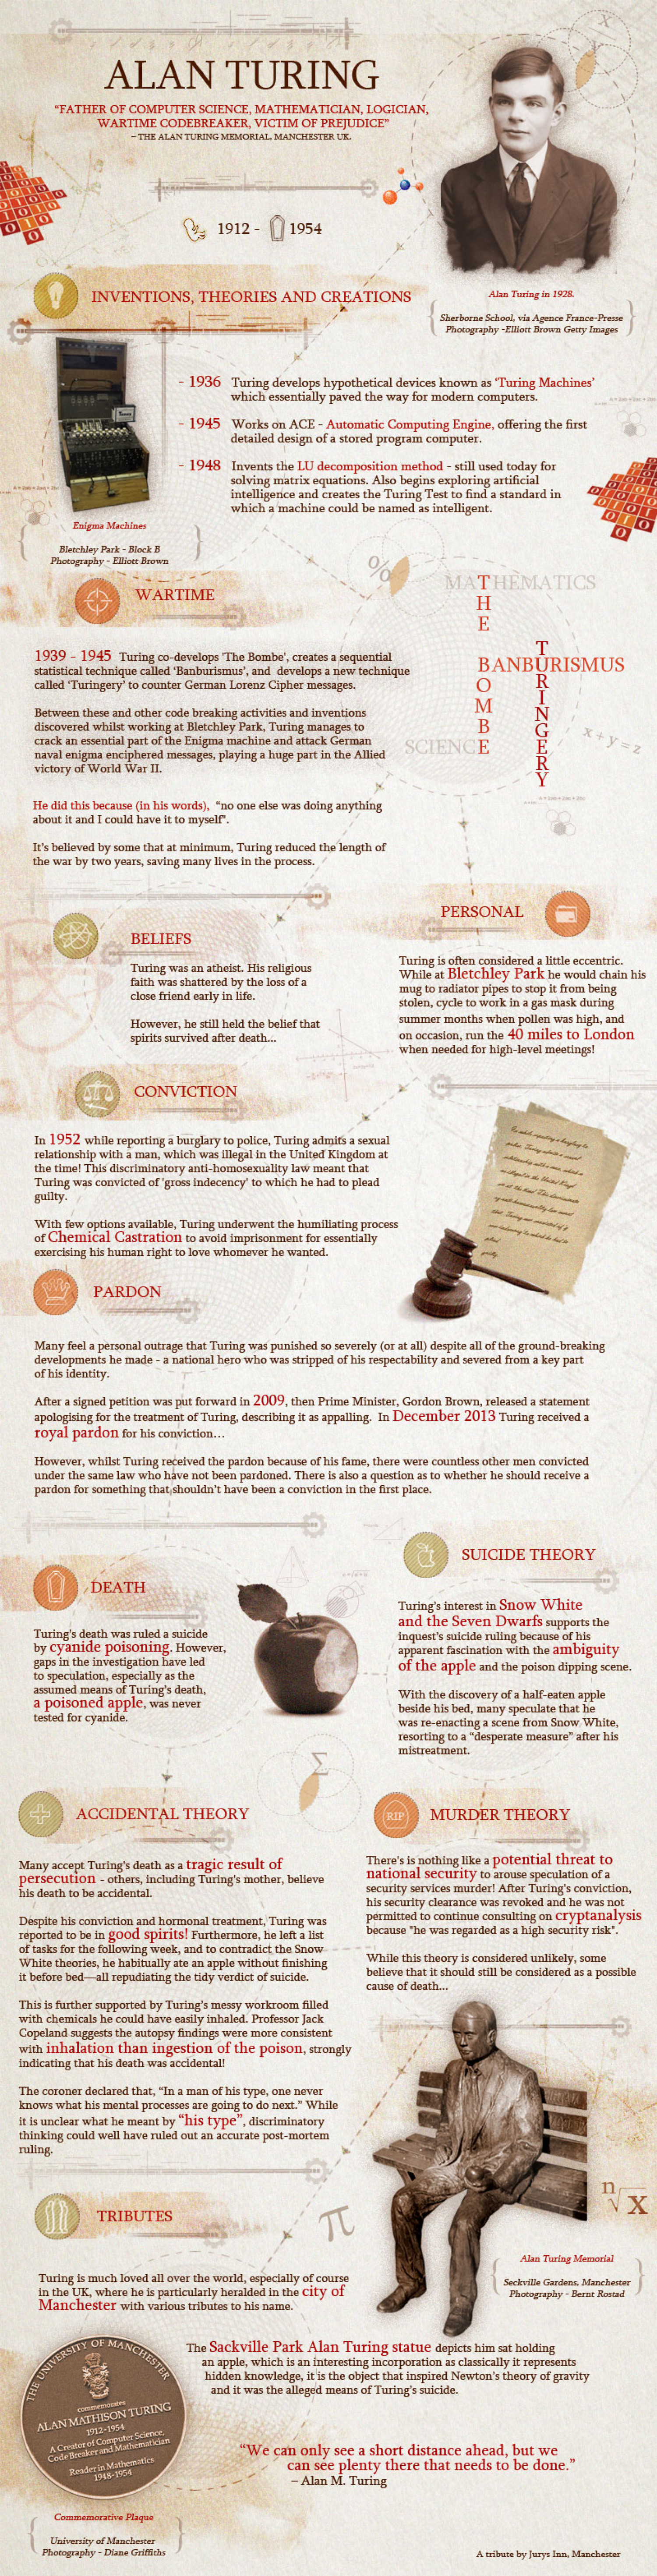 Alan Turing Mini Biography Infographic